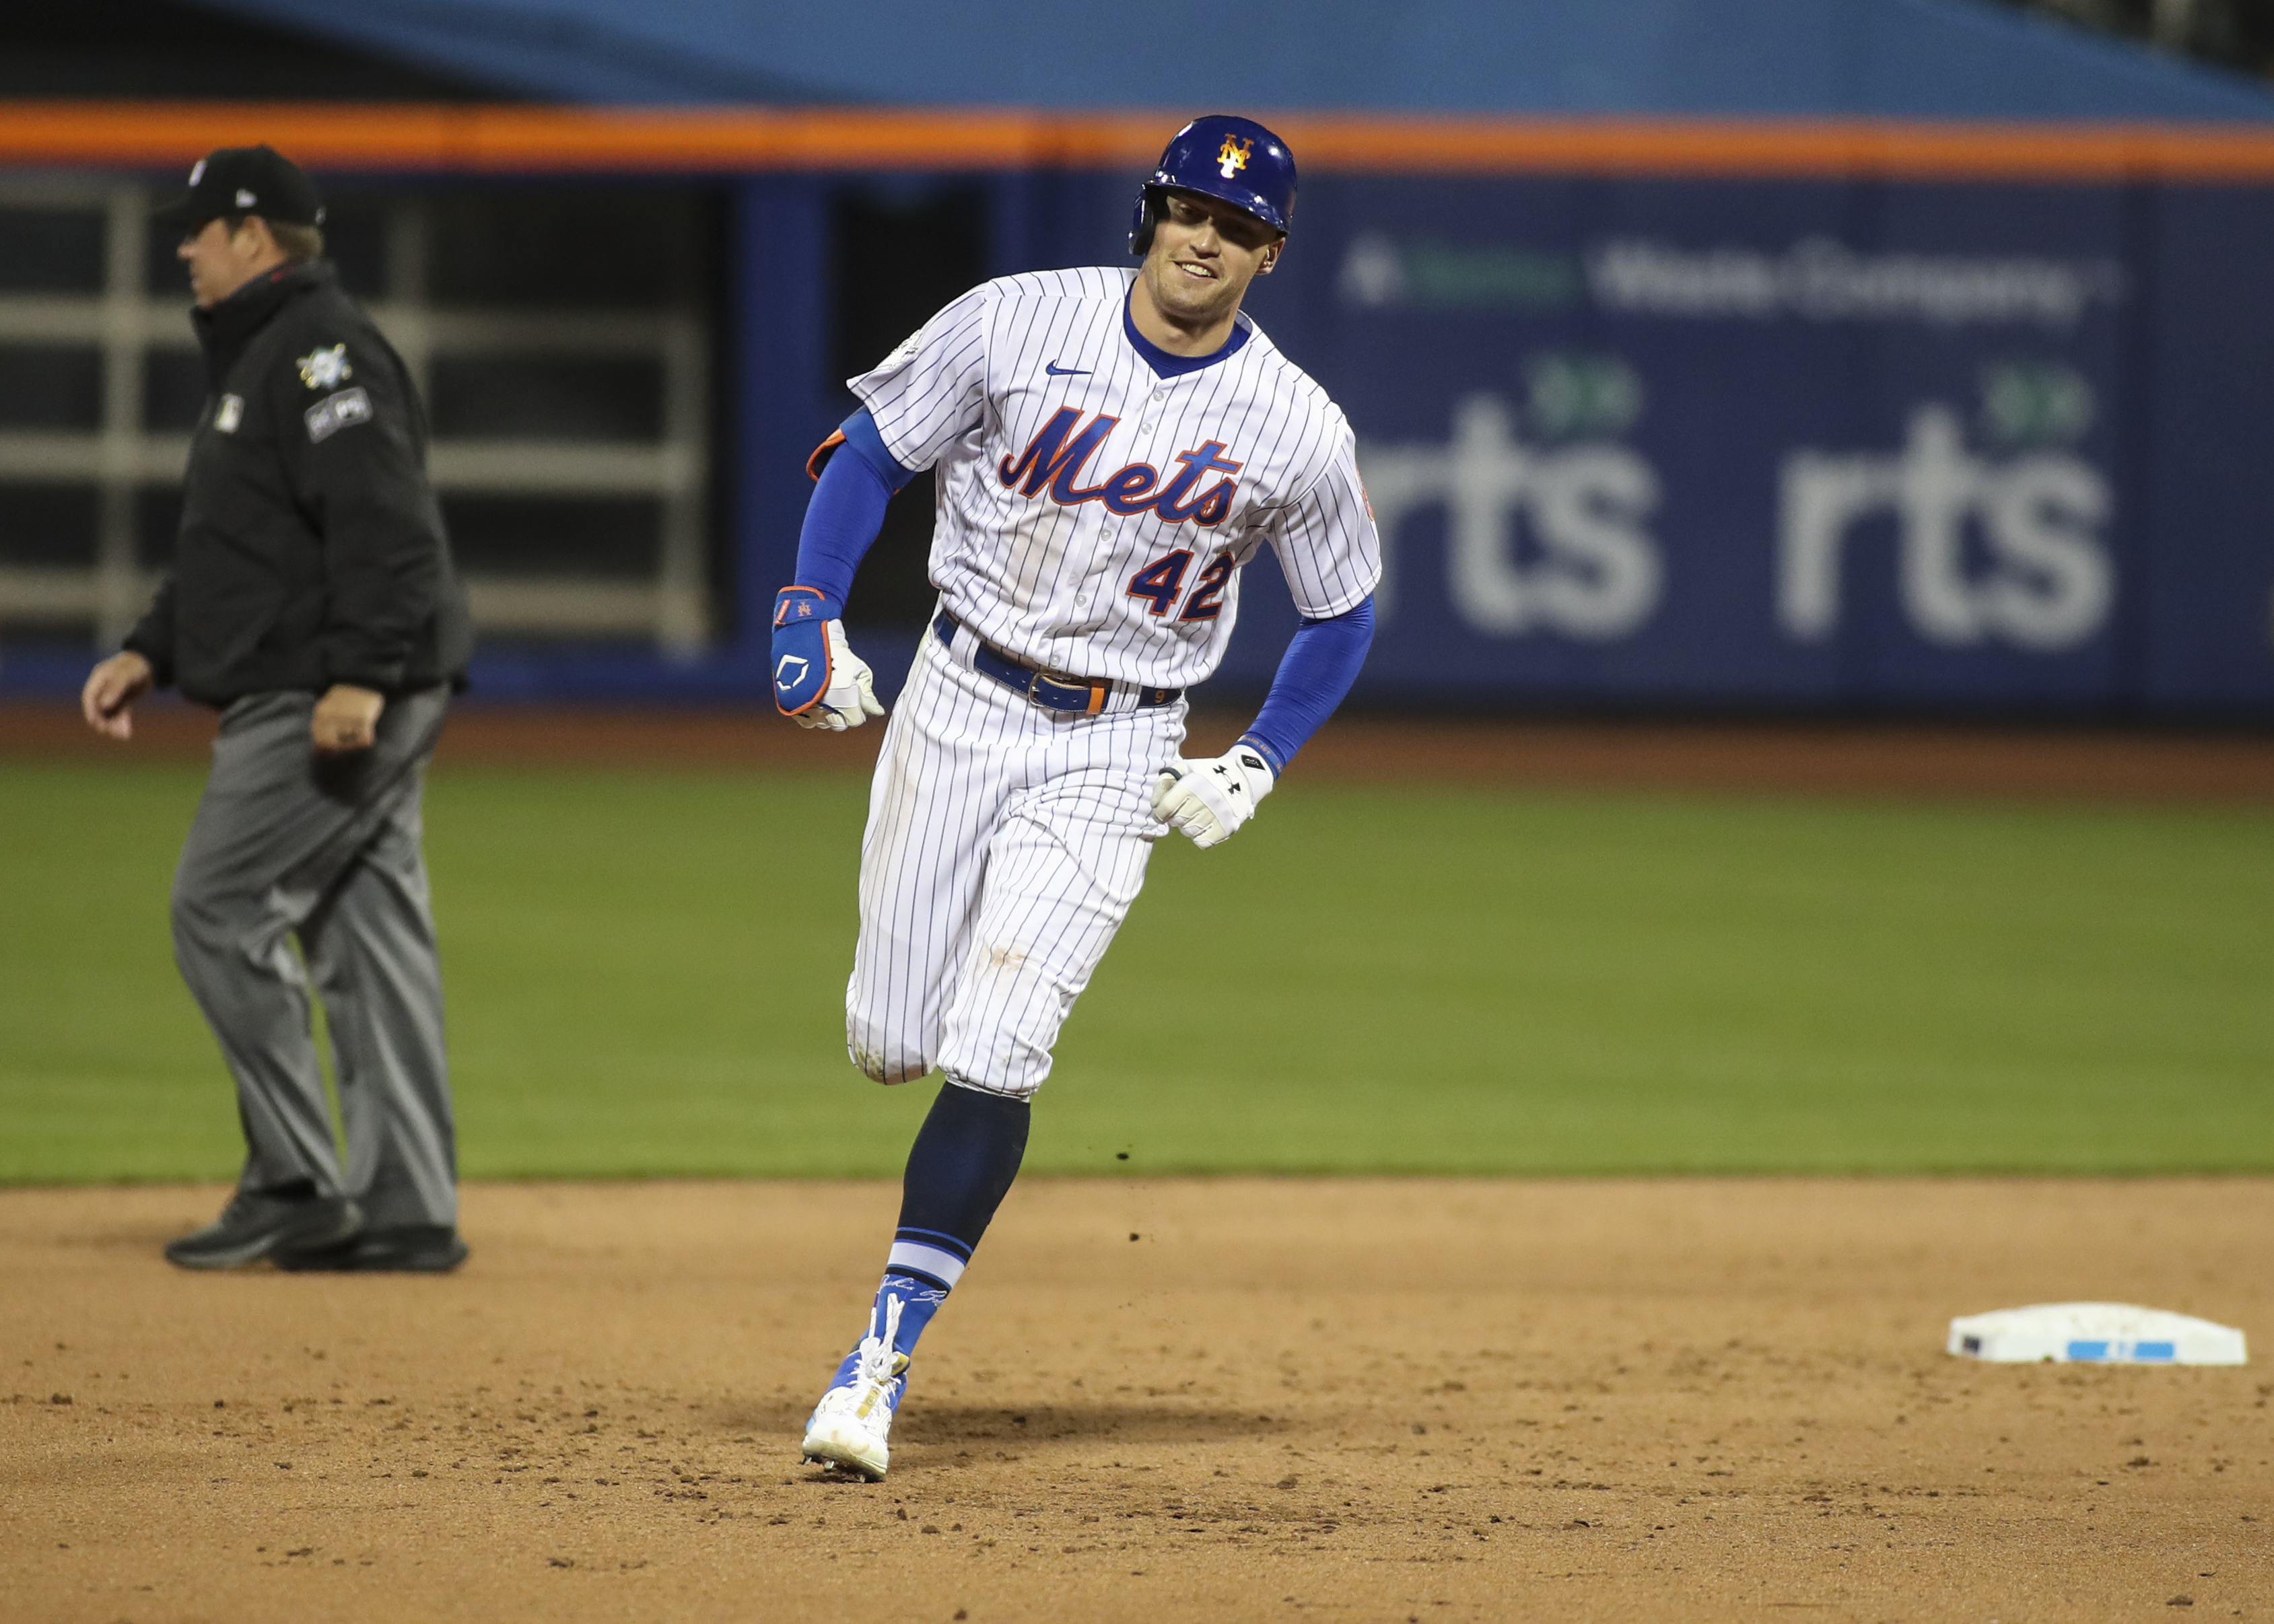 4/24/21 Game Preview: Washington Nationals at New York Mets